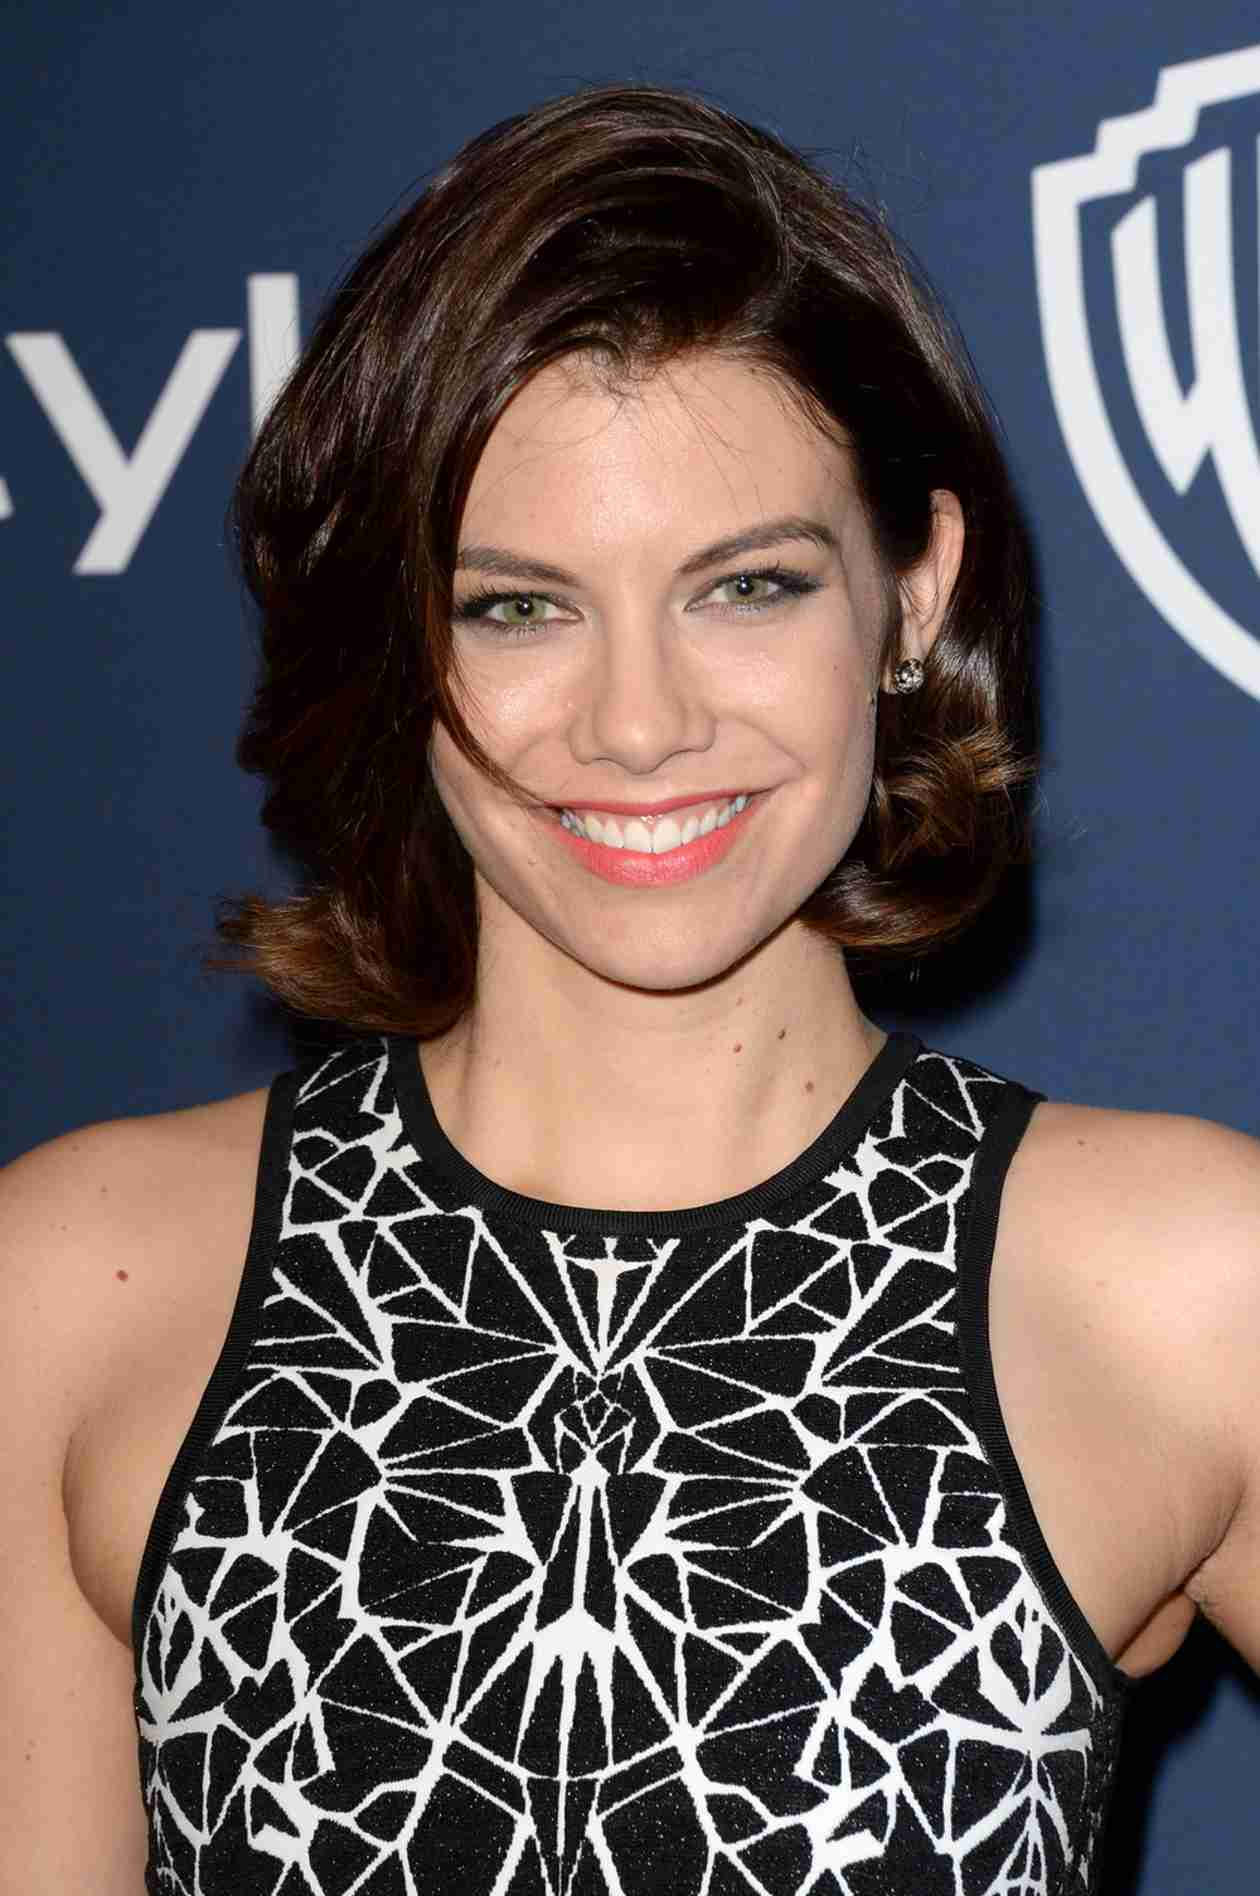 Lauren Cohan Tells Arsenio Hall About Hiding From Fans — She Pretended to Be Russian! (VIDEO)